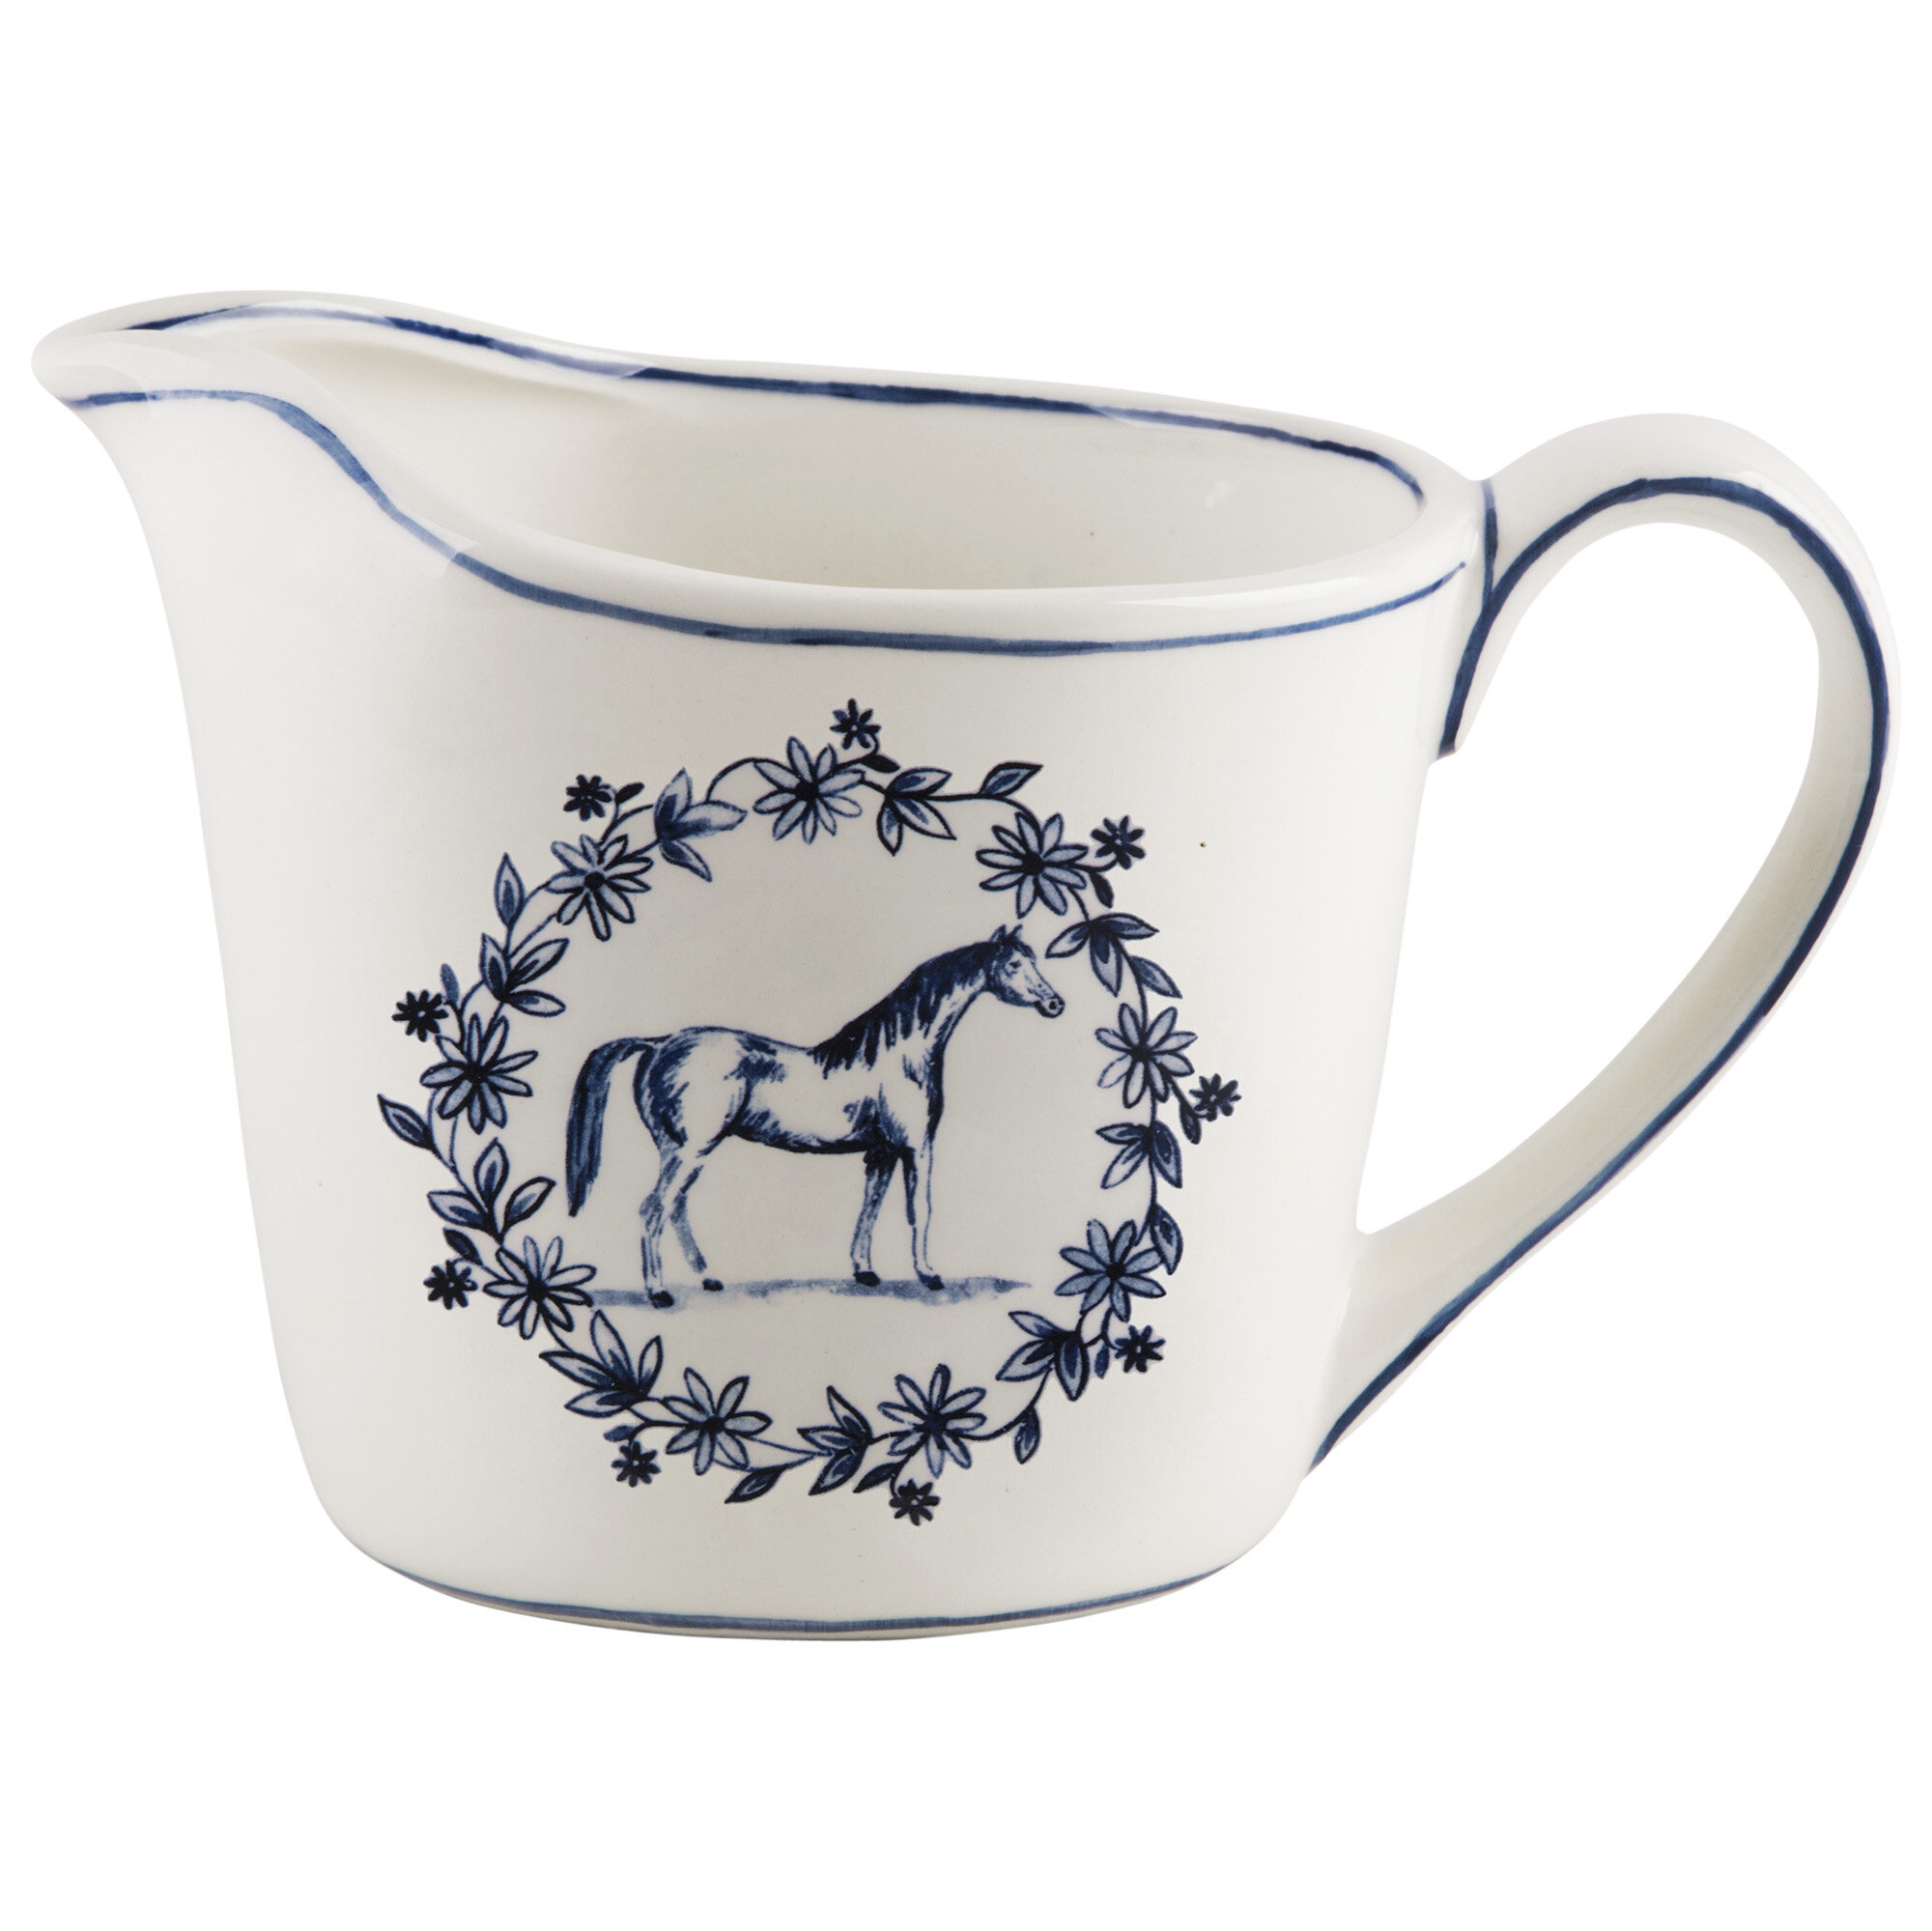 Molly Hatch Molly Hatch Horse Design 4 Cup Measuring Cup Birch Lane